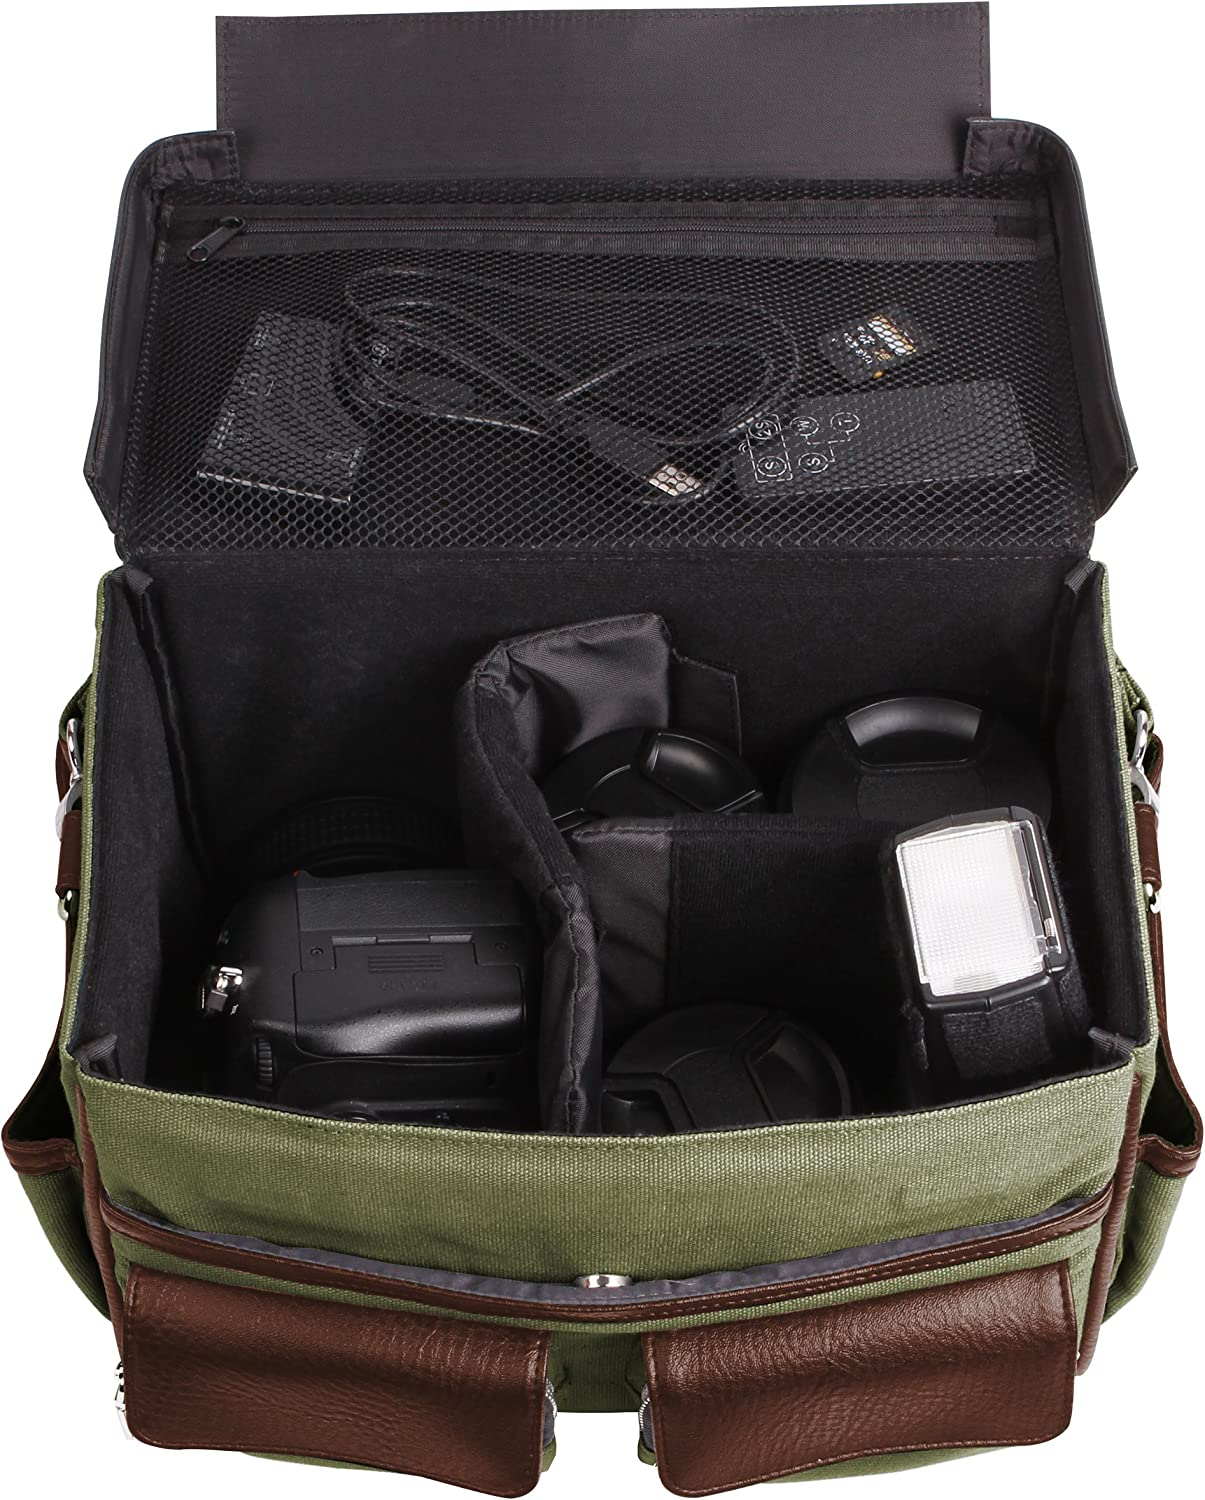 Lencca Forest Espresso Camera Messenger Bag for Nikon Digital Compact//Premium Compact Cameras